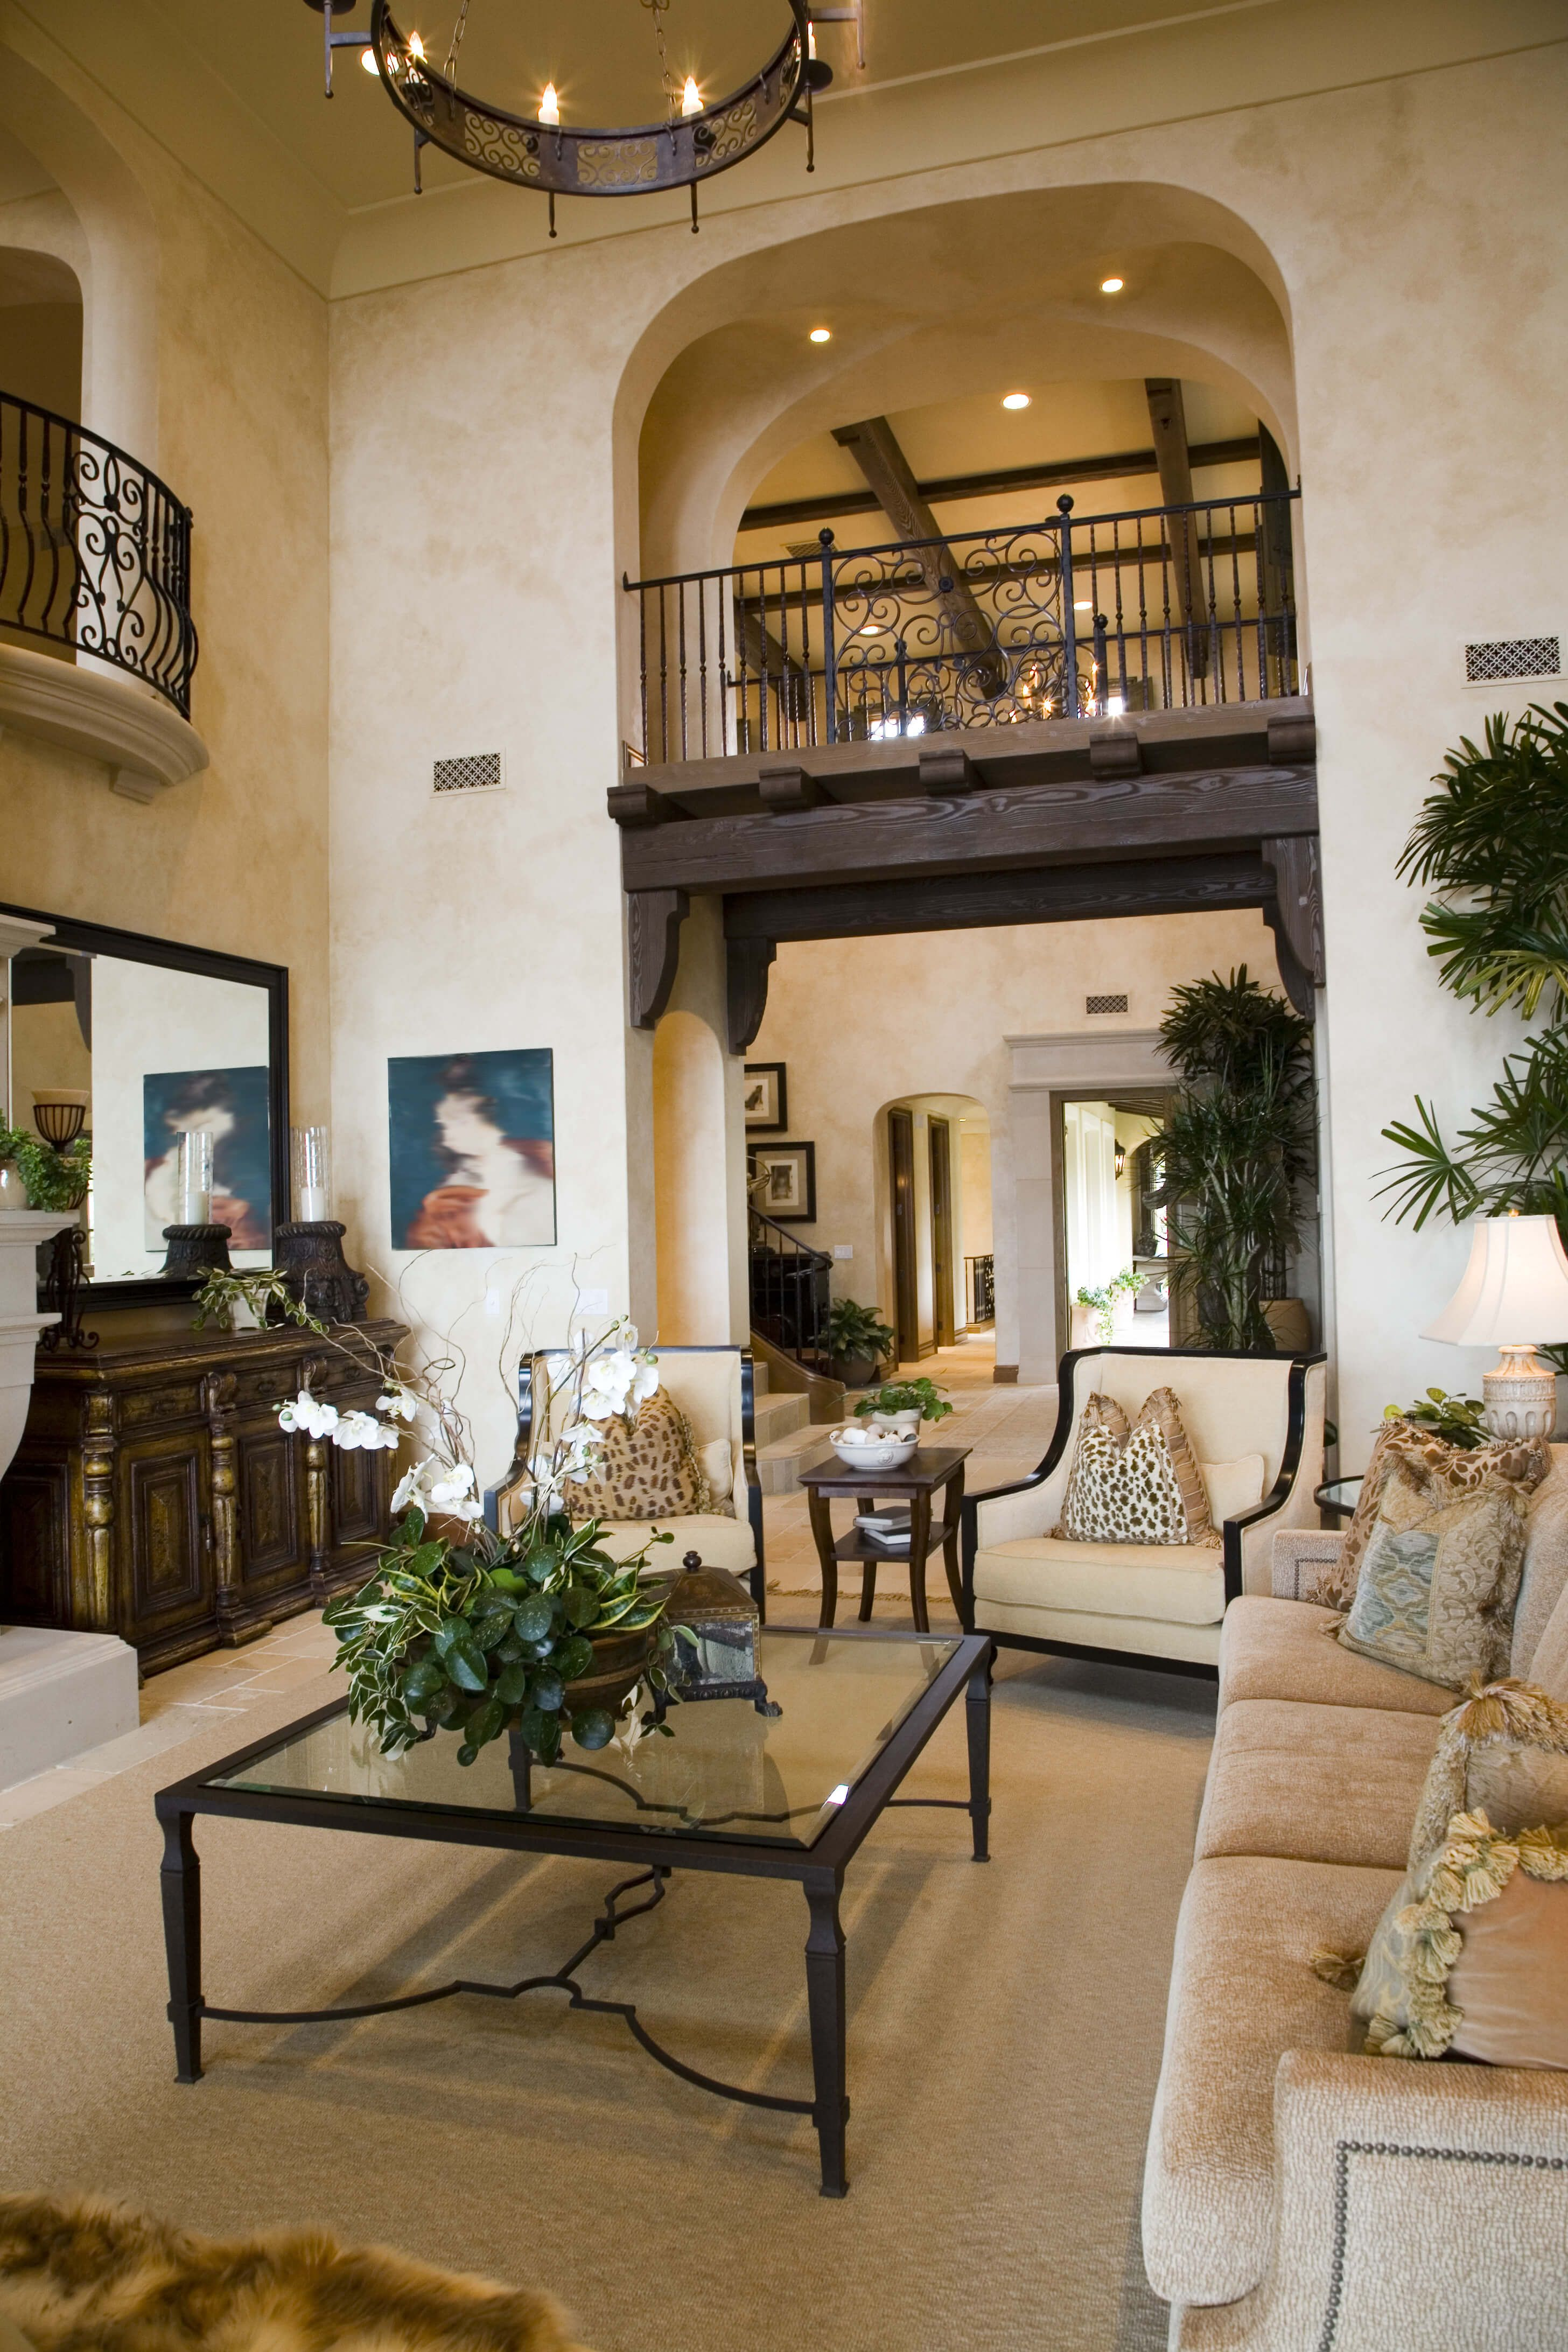 101 Beautiful Formal Living Room Ideas Photos Mediterranean Living Rooms Tuscan Living Rooms Mediterranean Homes #simple #tuscan #living #room